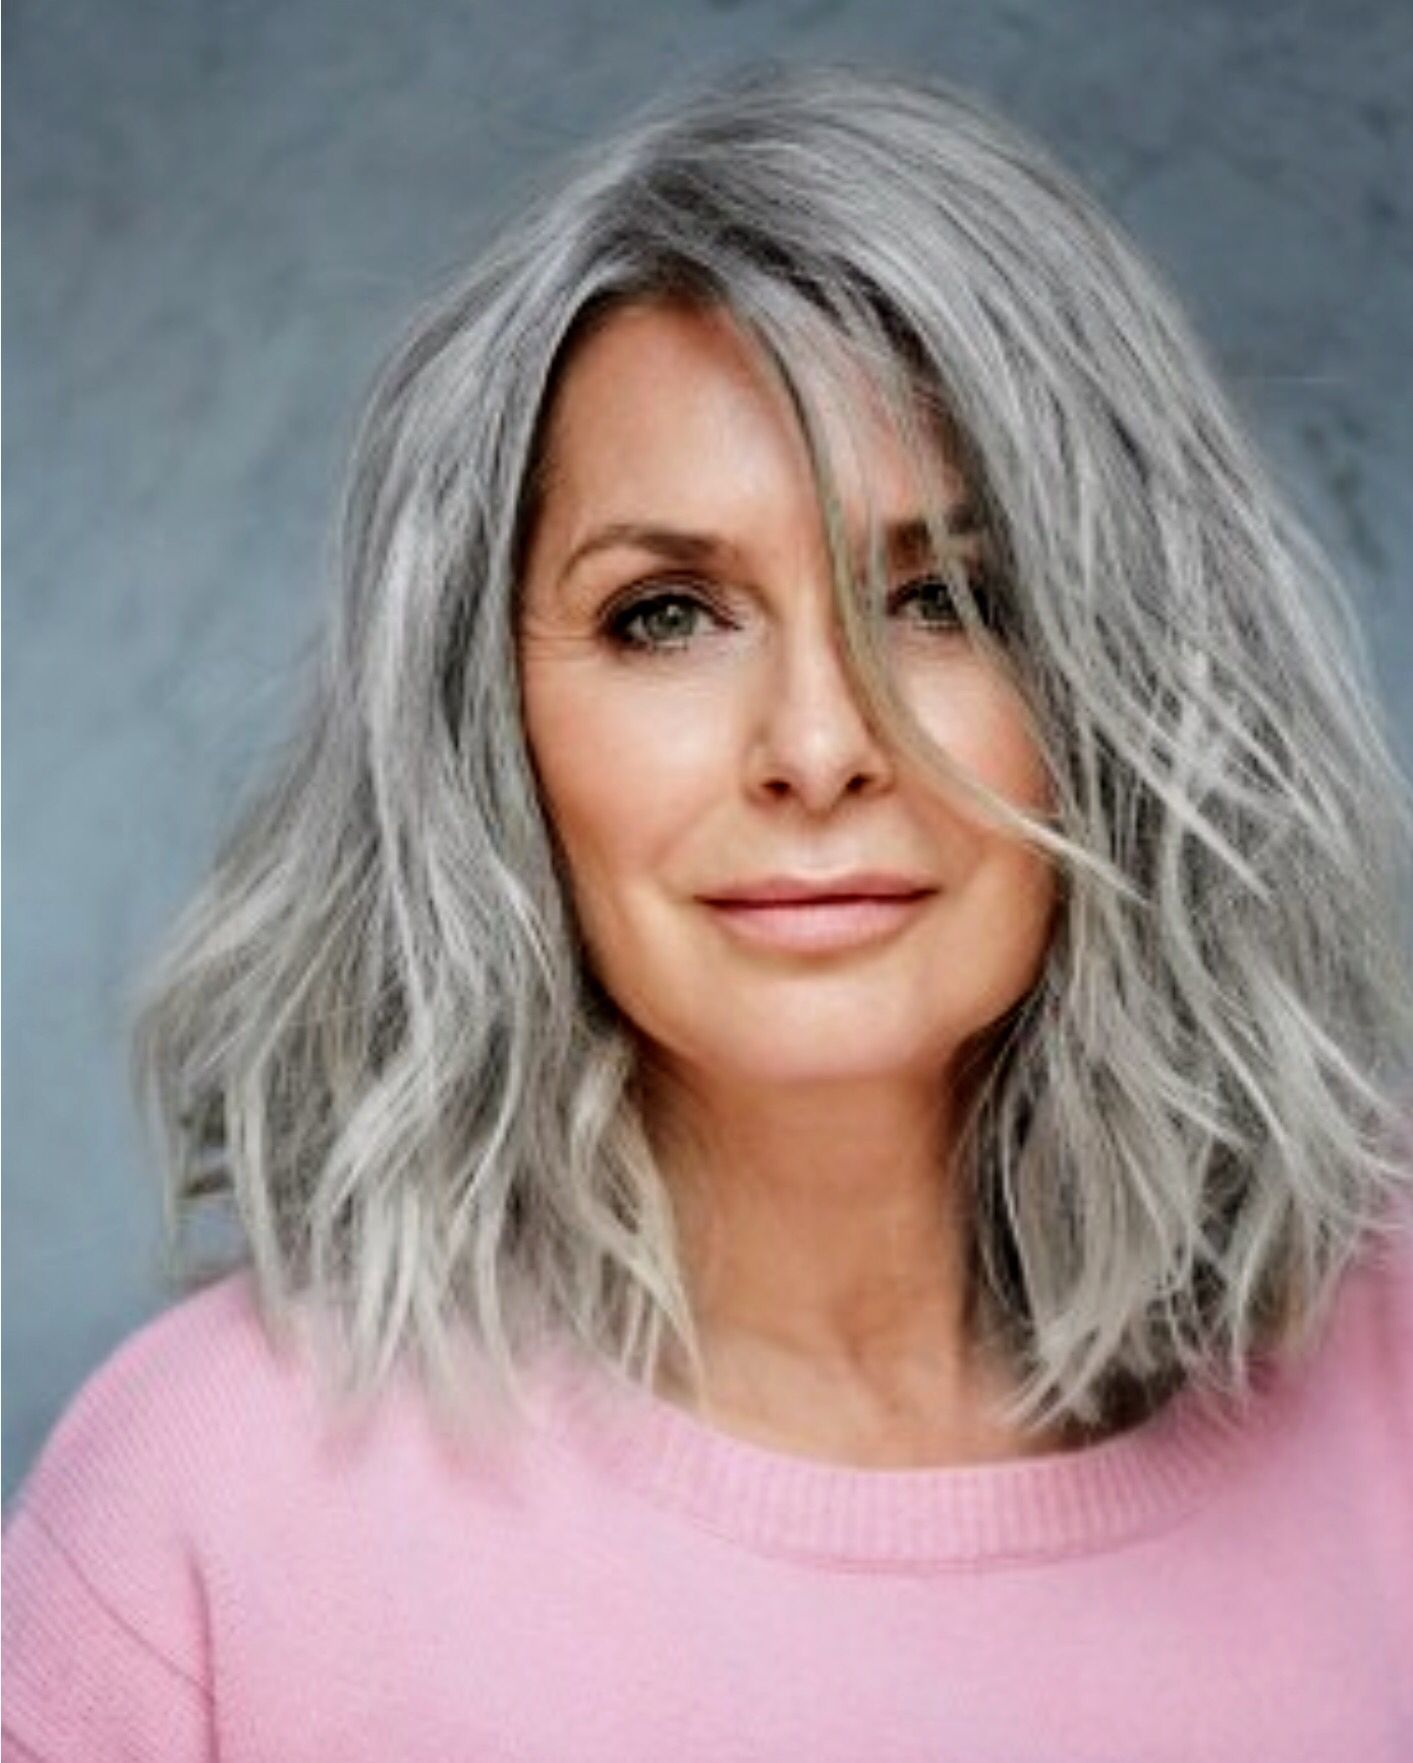 Young Salts Medium Silver Withbangs Natural Long Gray Hair Grey Hair Model Silver Grey Hair